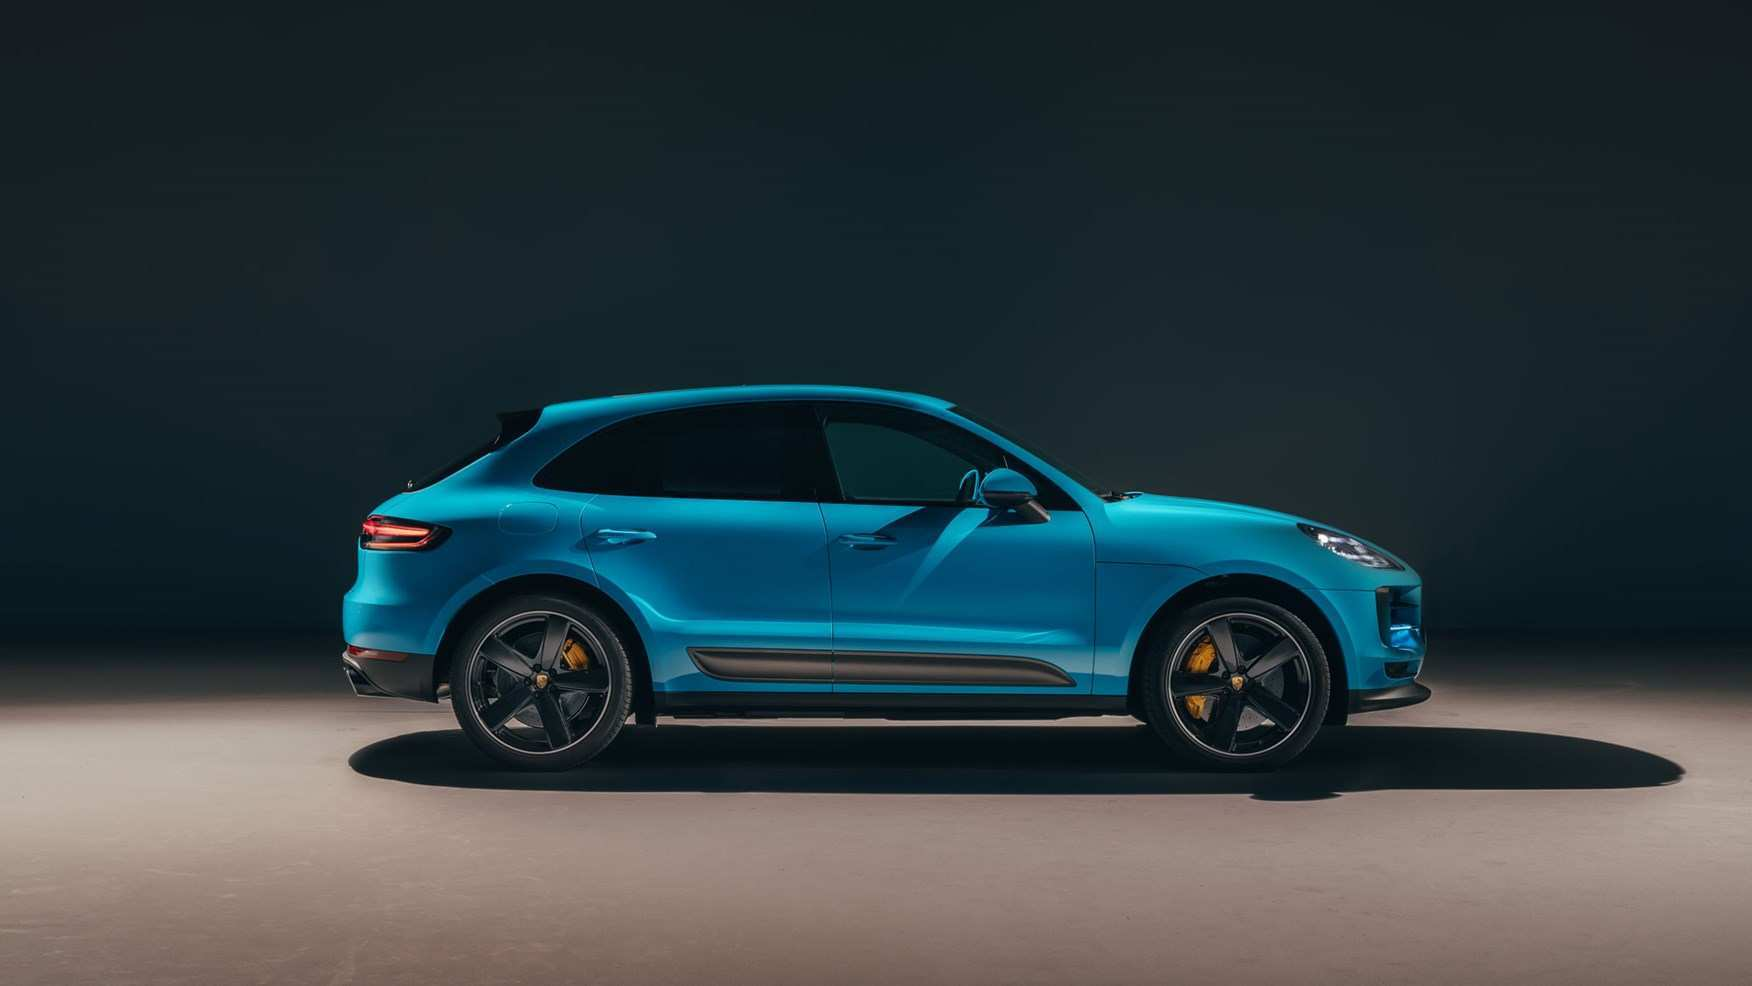 44 Concept of 2019 Porsche Macan Hybrid Pricing for 2019 Porsche Macan Hybrid